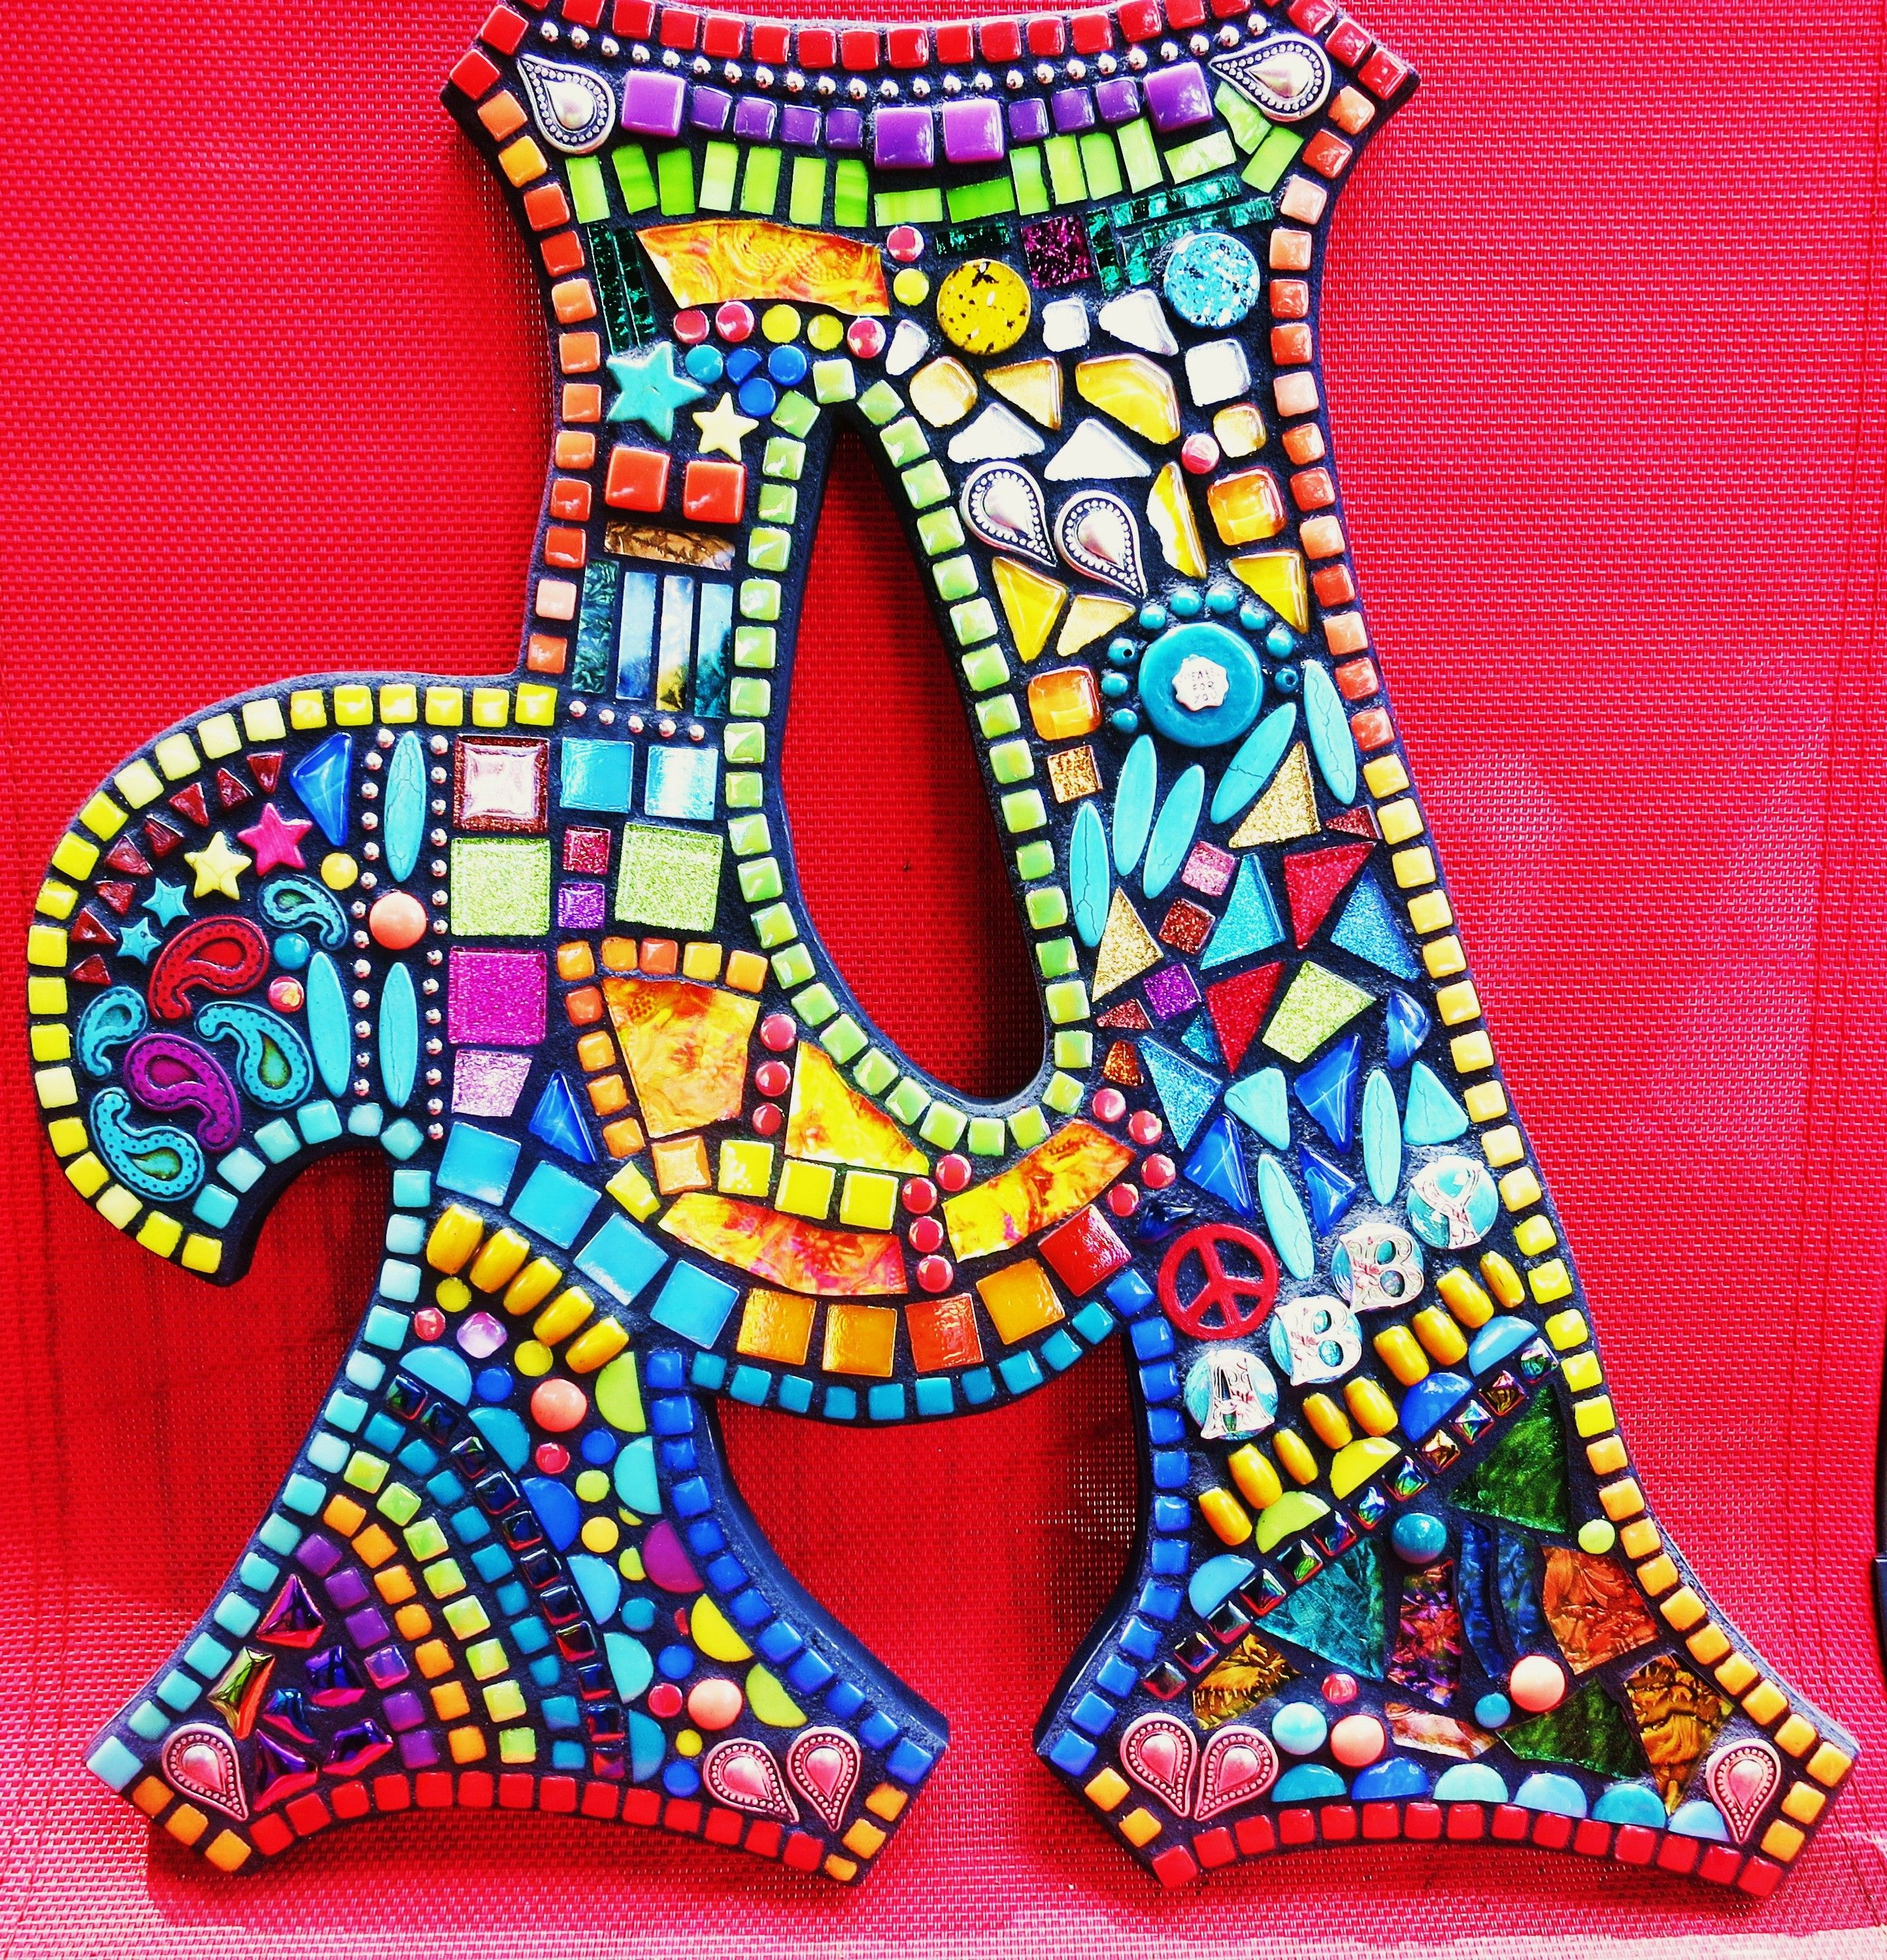 Fliesen Mosaik Hauswand Custom Mosaic Letters Initials Created By Tina Wise